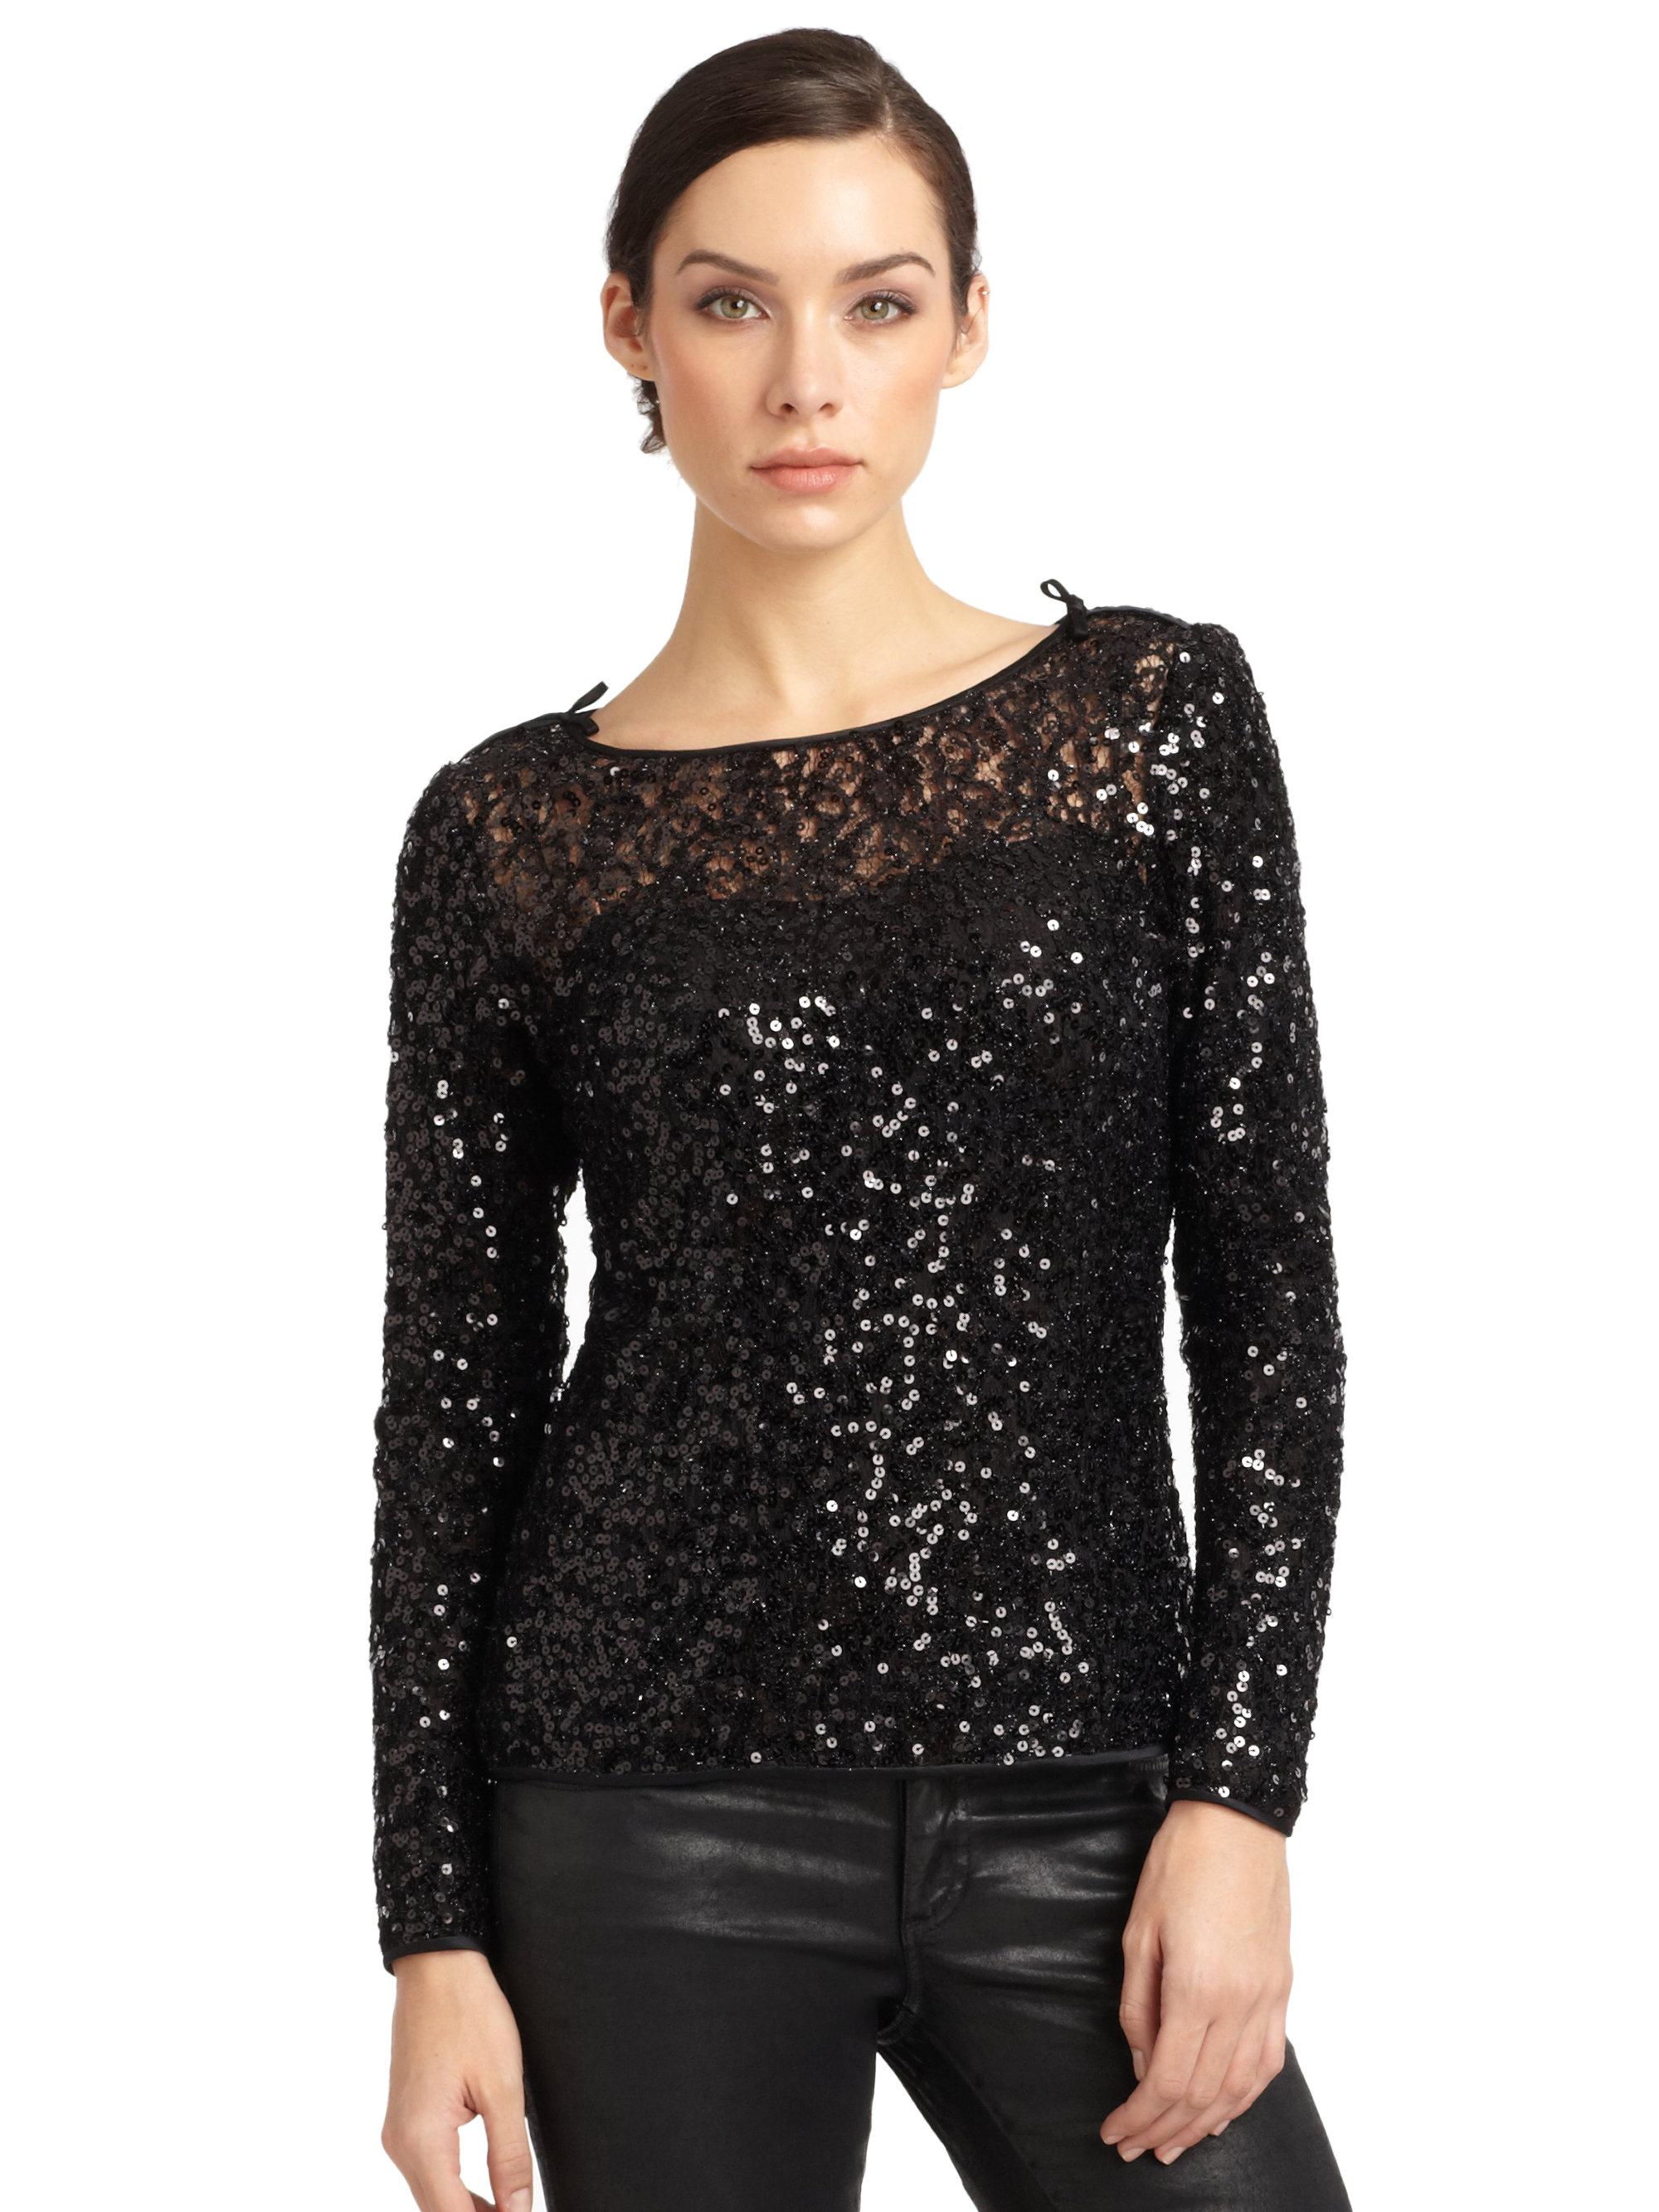 Find great deals on eBay for long sleeve silver sequin top. Shop with confidence.